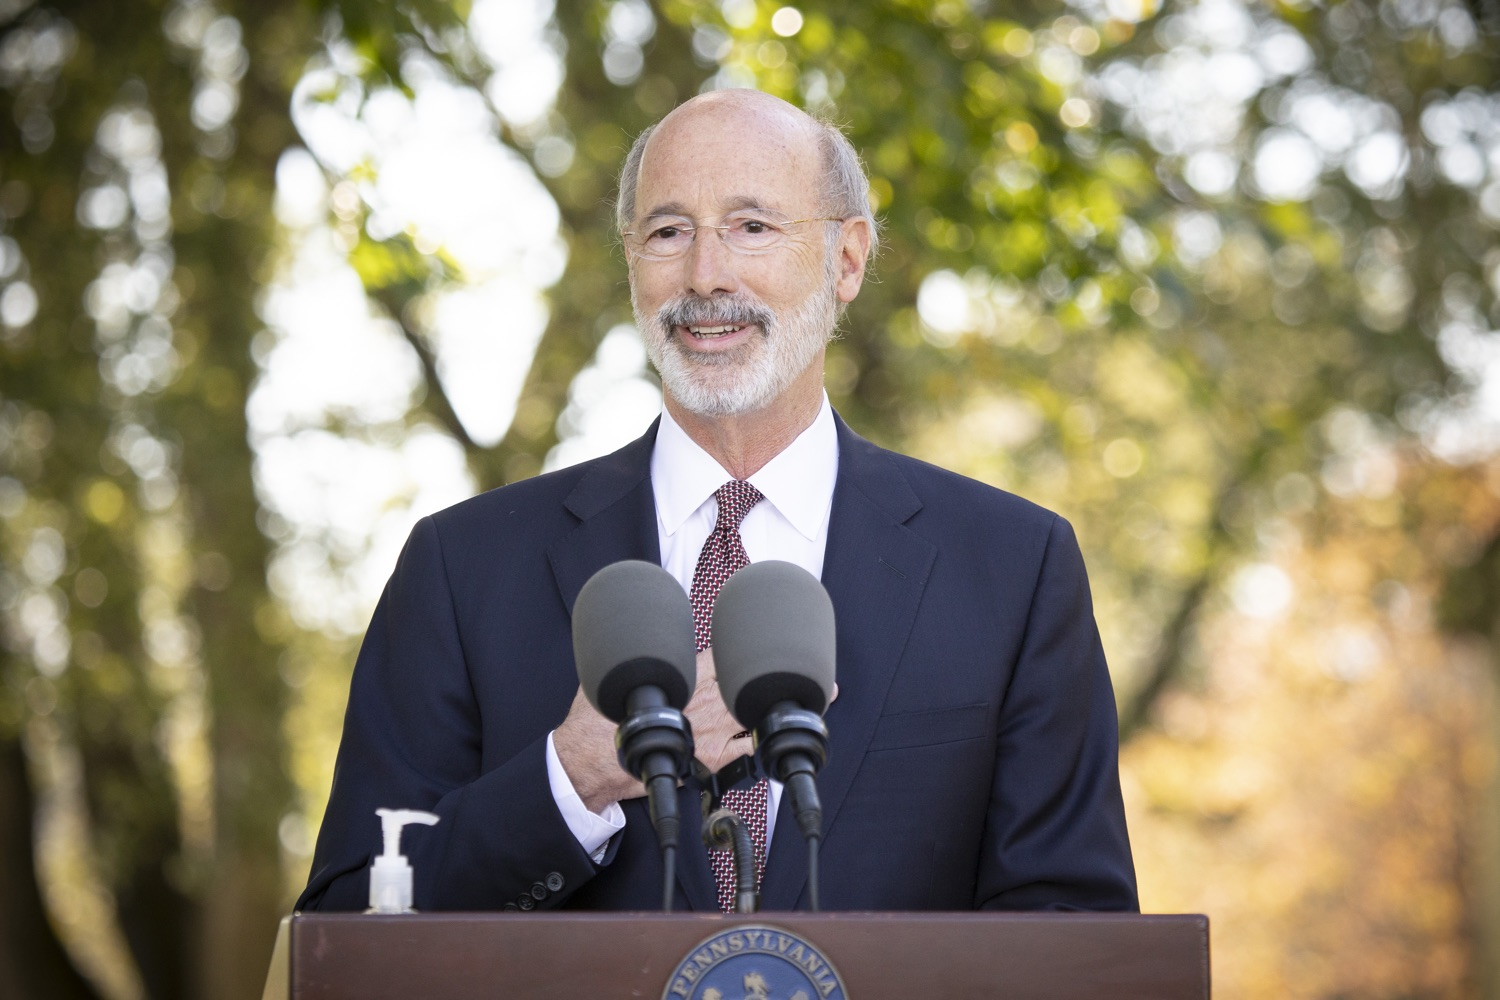 "<a href=""https://filesource.wostreaming.net/commonwealthofpa/photo/18321_gov_aca_dz_011.jpg"" target=""_blank"">⇣ Download Photo<br></a>Pennsylvania Governor Tom Wolf speaking to the press.  As the number of positive COVID-19 cases rise in Pennsylvania and as we enter flu season, protecting the Affordable Care Act (ACA) and ensuring that all Pennsylvanians have access to health coverage are more important than ever, Governor Tom Wolf said today in Chester County. The governor was joined by local elected officials and representatives from local health care organizations. Landenberg, PA  October 15, 2020"